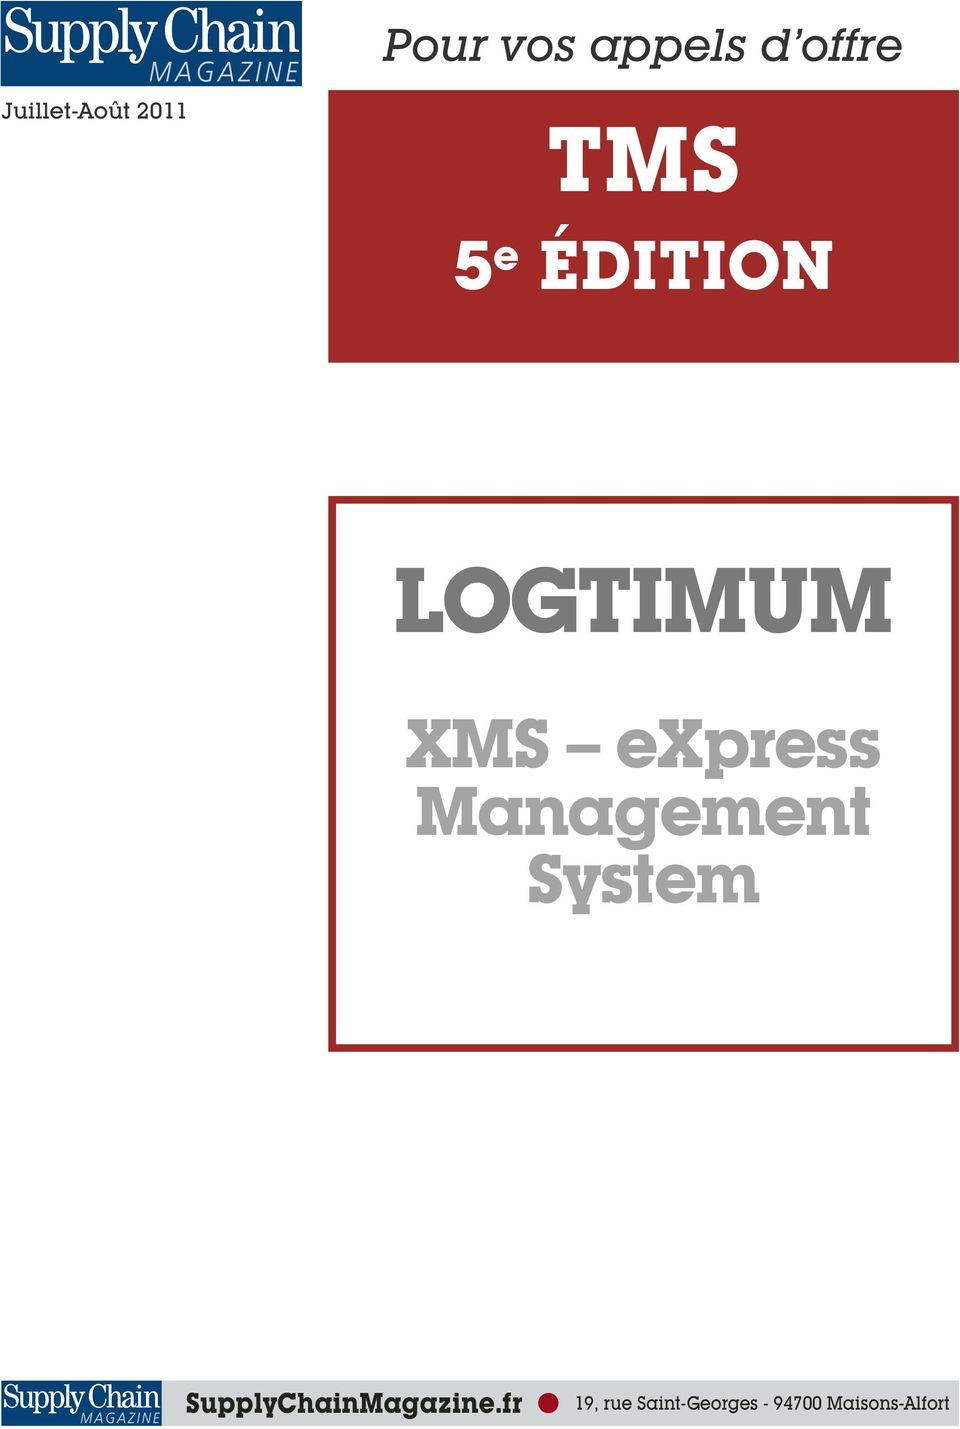 express Management System